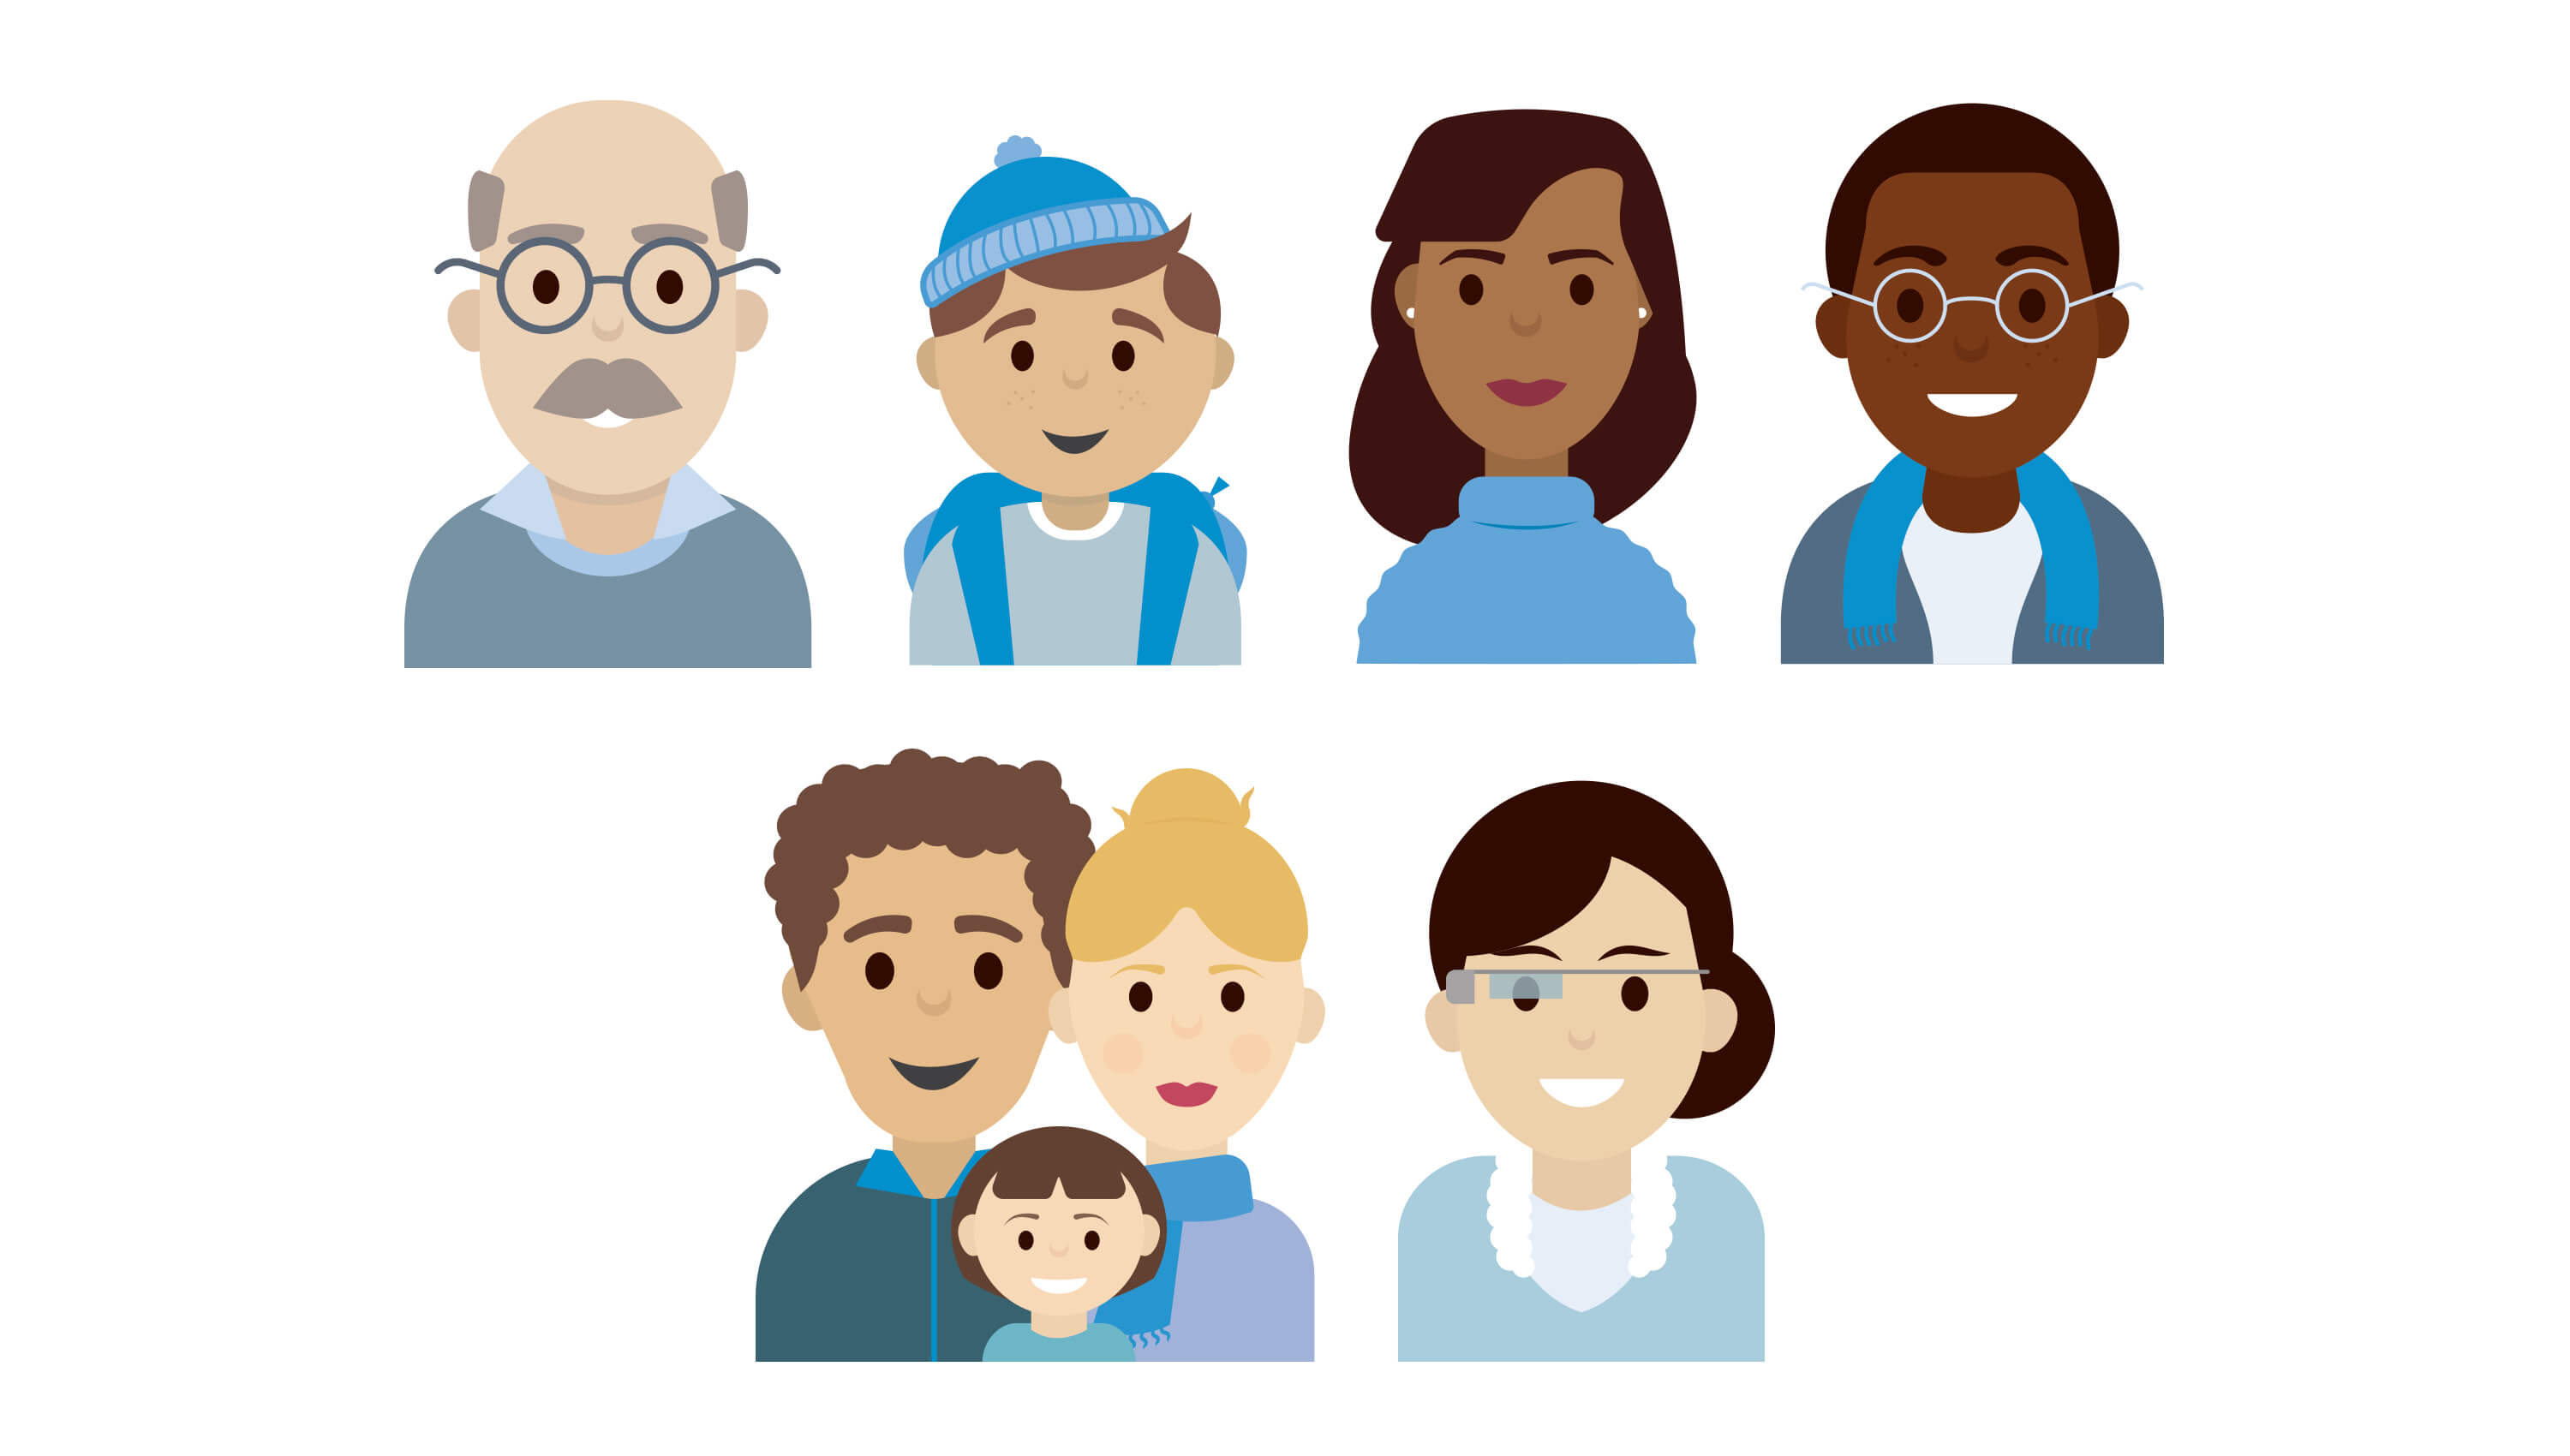 Google use case character illustrations